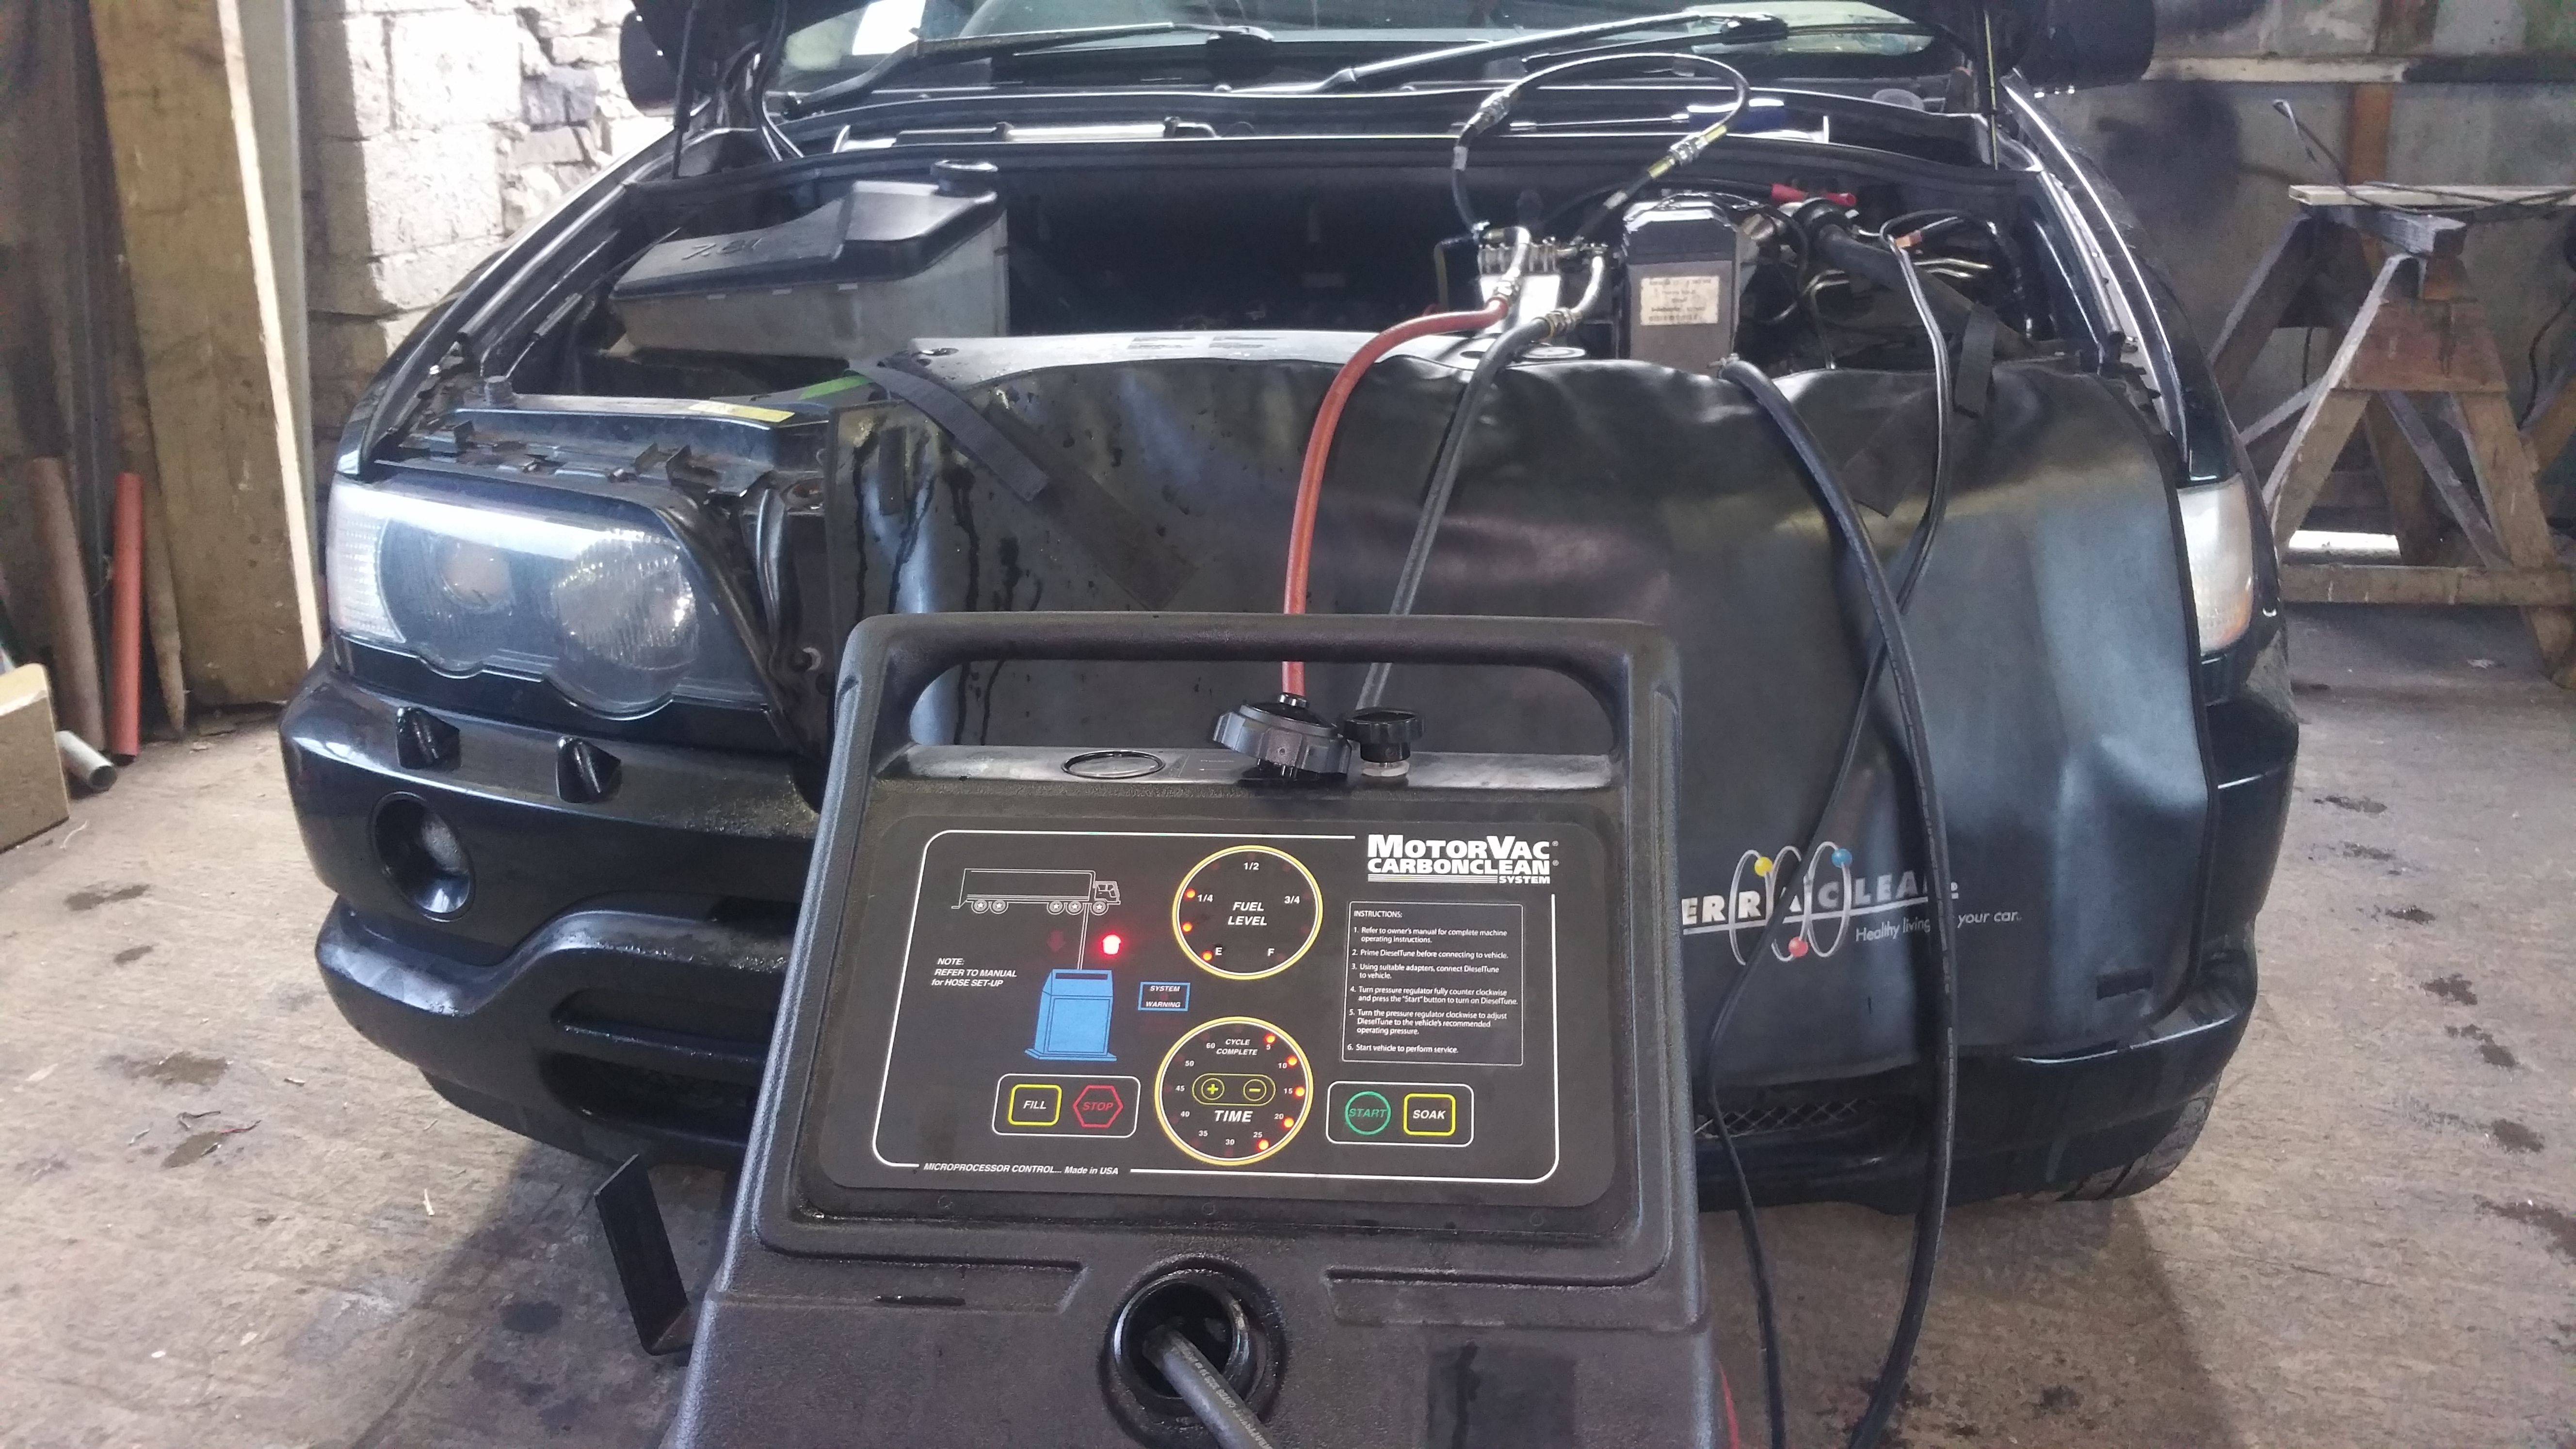 A BMW X5 having a Terraclean fuel service  Terraclean acts